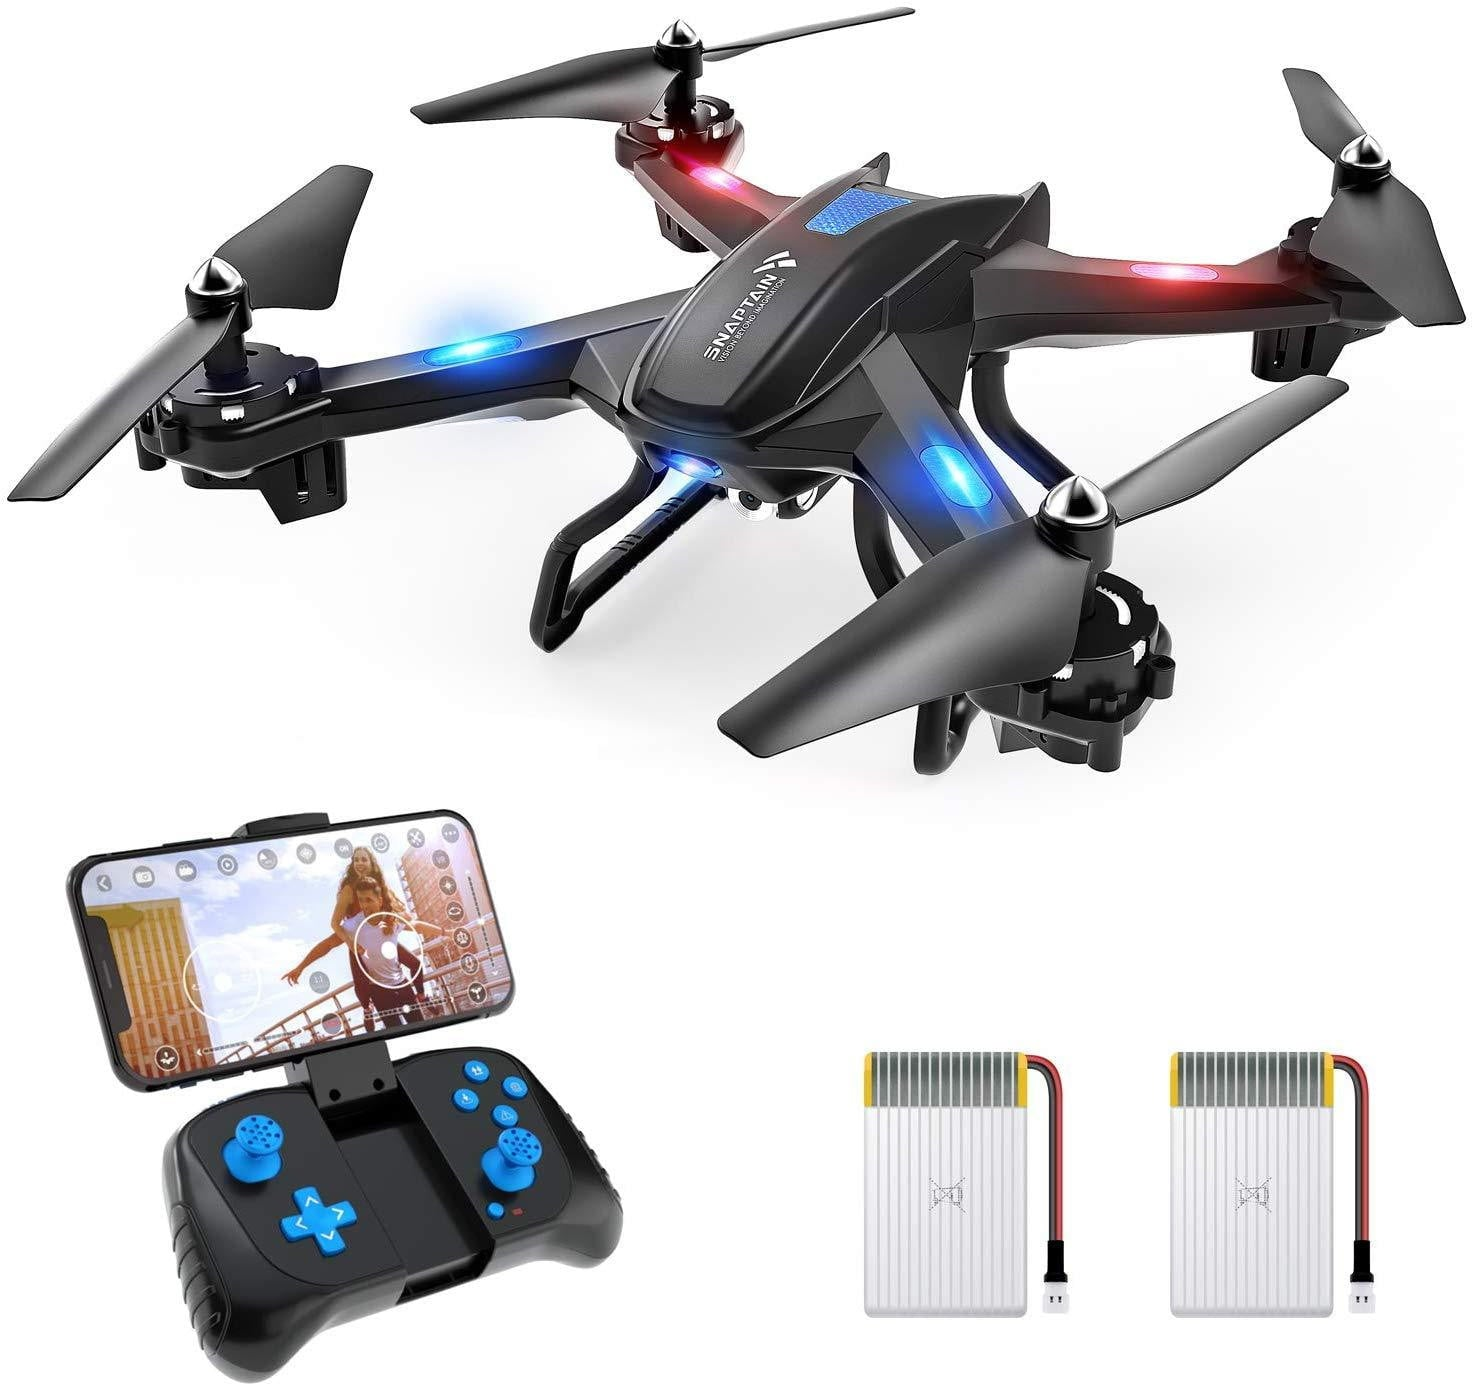 SNAPTAIN S5C 720P HD Camera Wi-Fi FPV Beginner Drone